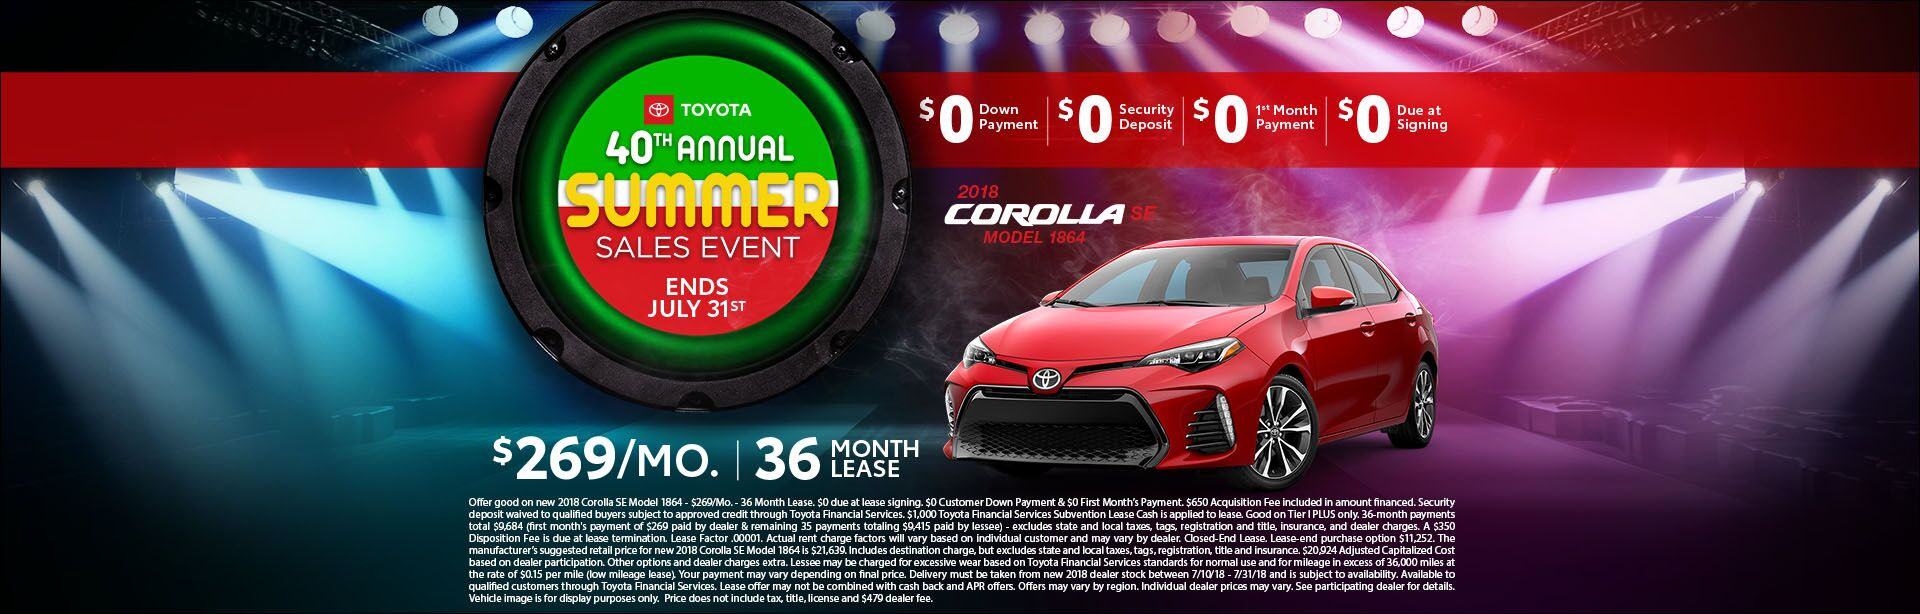 Toyota Corolla - Summer Sales Event